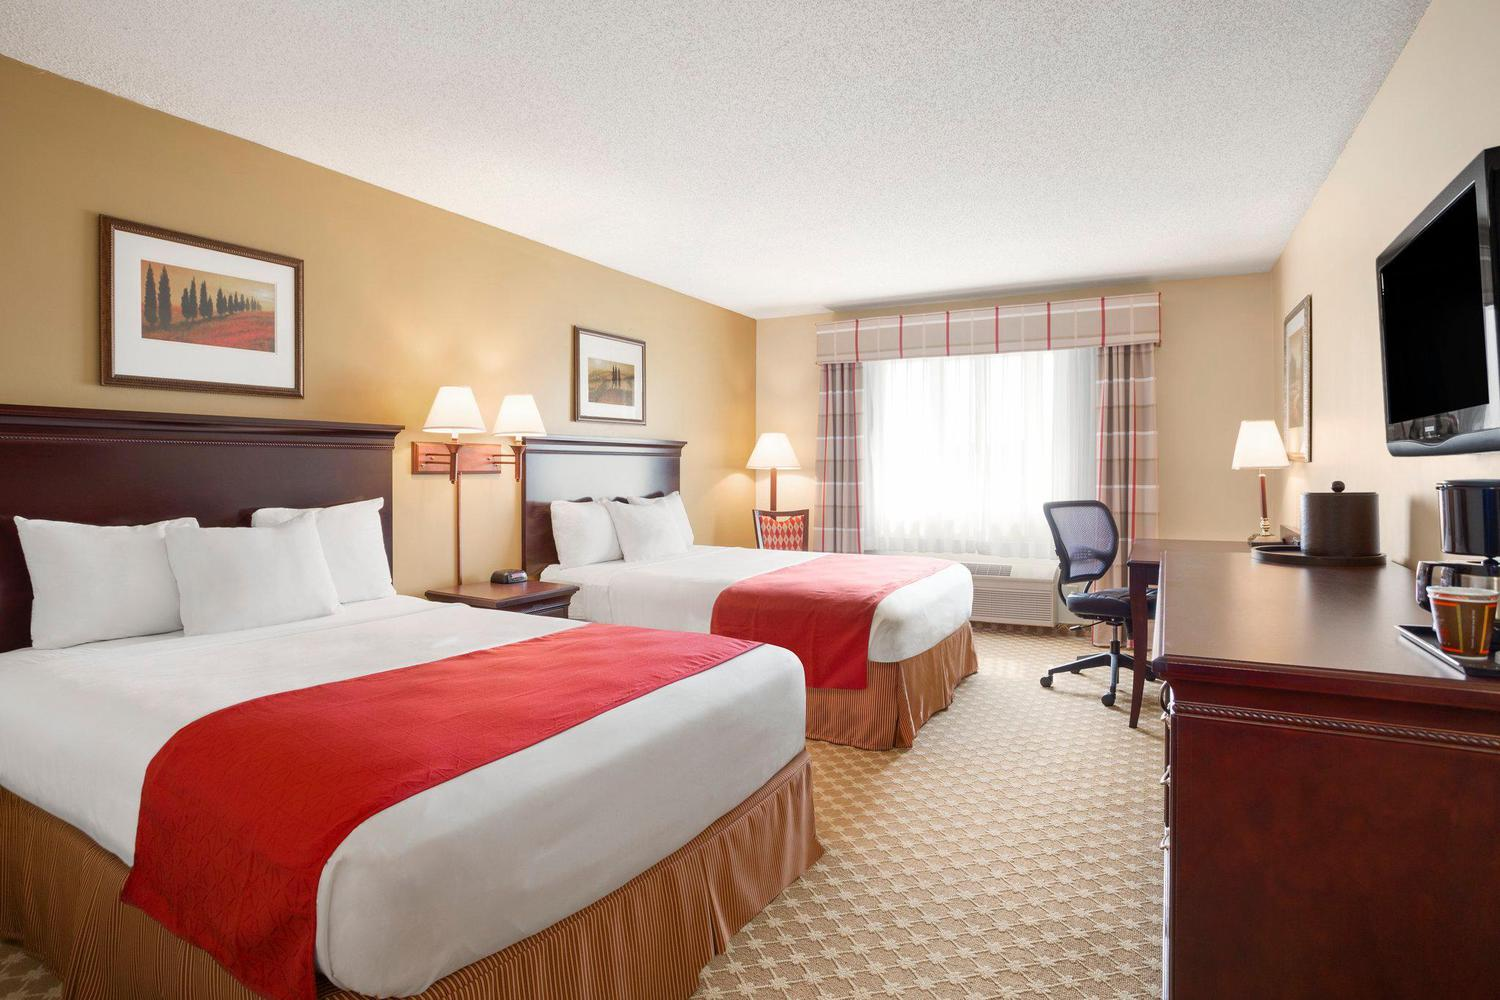 us ne hotel town com booking southeast extended stay house downtown townhouse street m lincoln